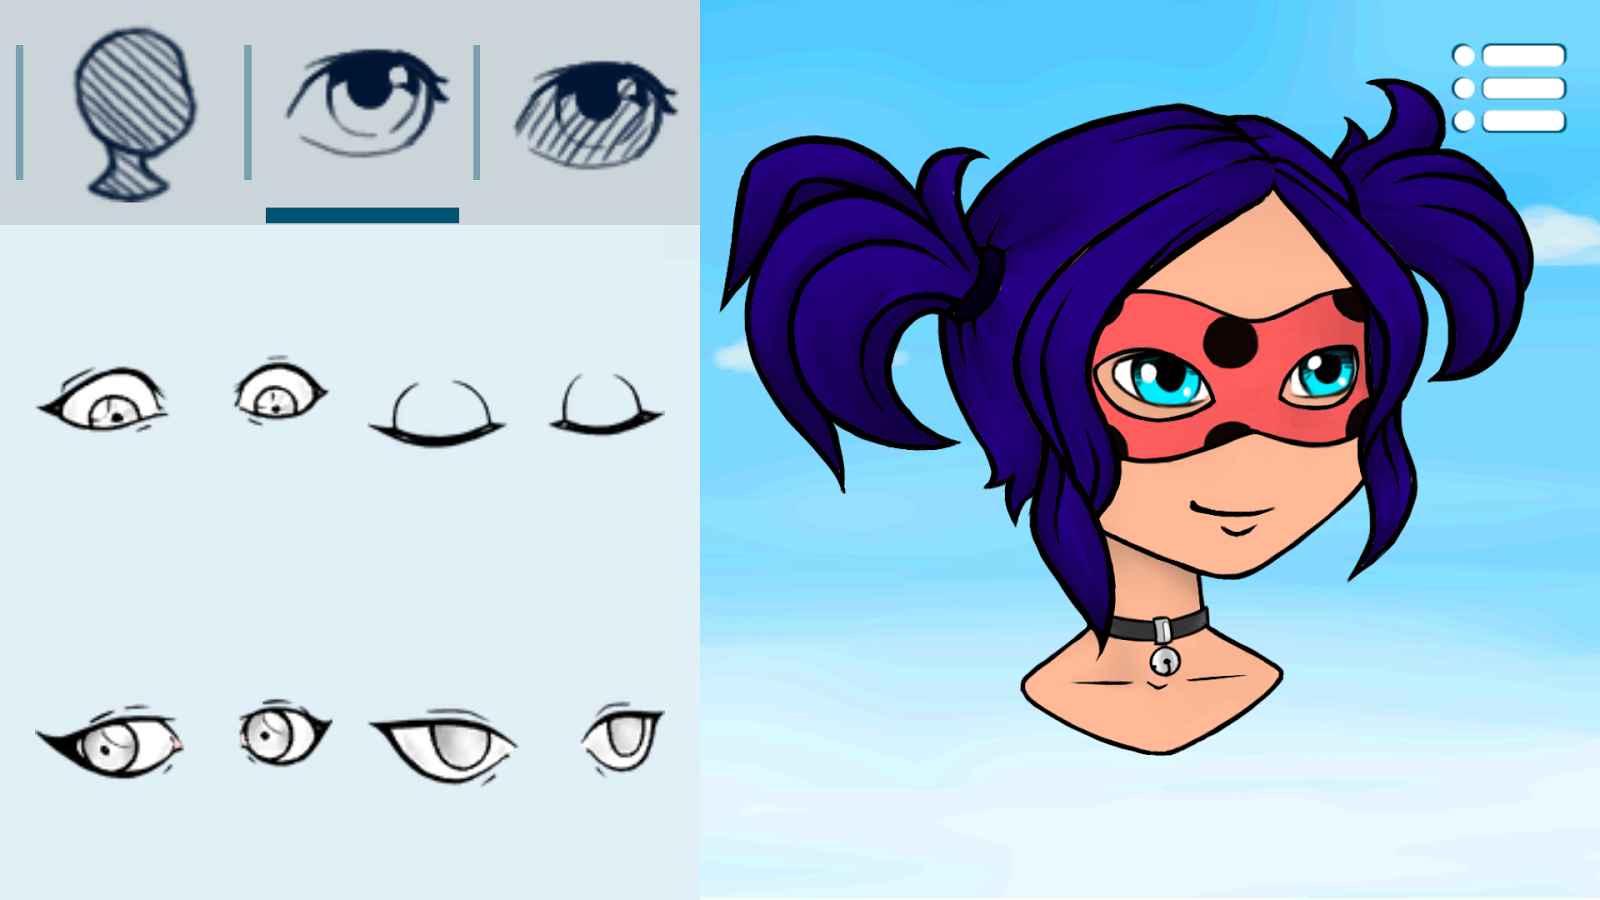 Avatar Maker Anime Selfie Android Apps on Google Play